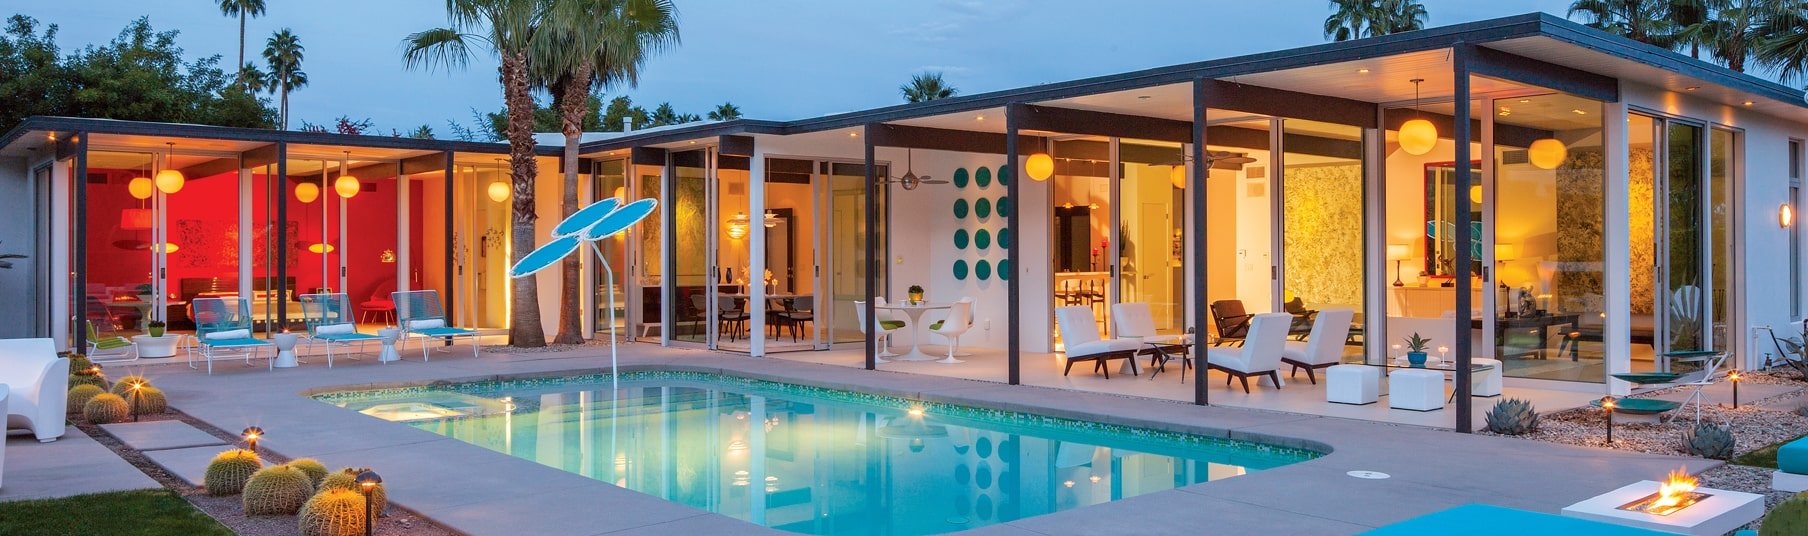 Atomic Ranch  The Trusted Resource For Mid Mod Design - Mid century home design